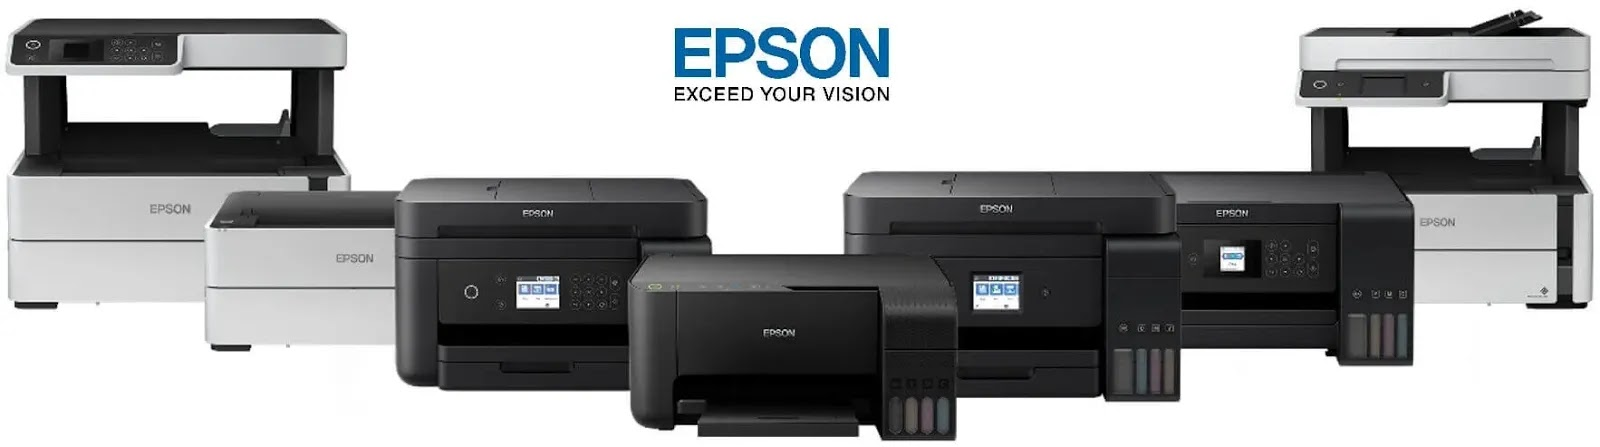 Epson Hailed as Number 1 Ink Tank Vendor in PH and SEA